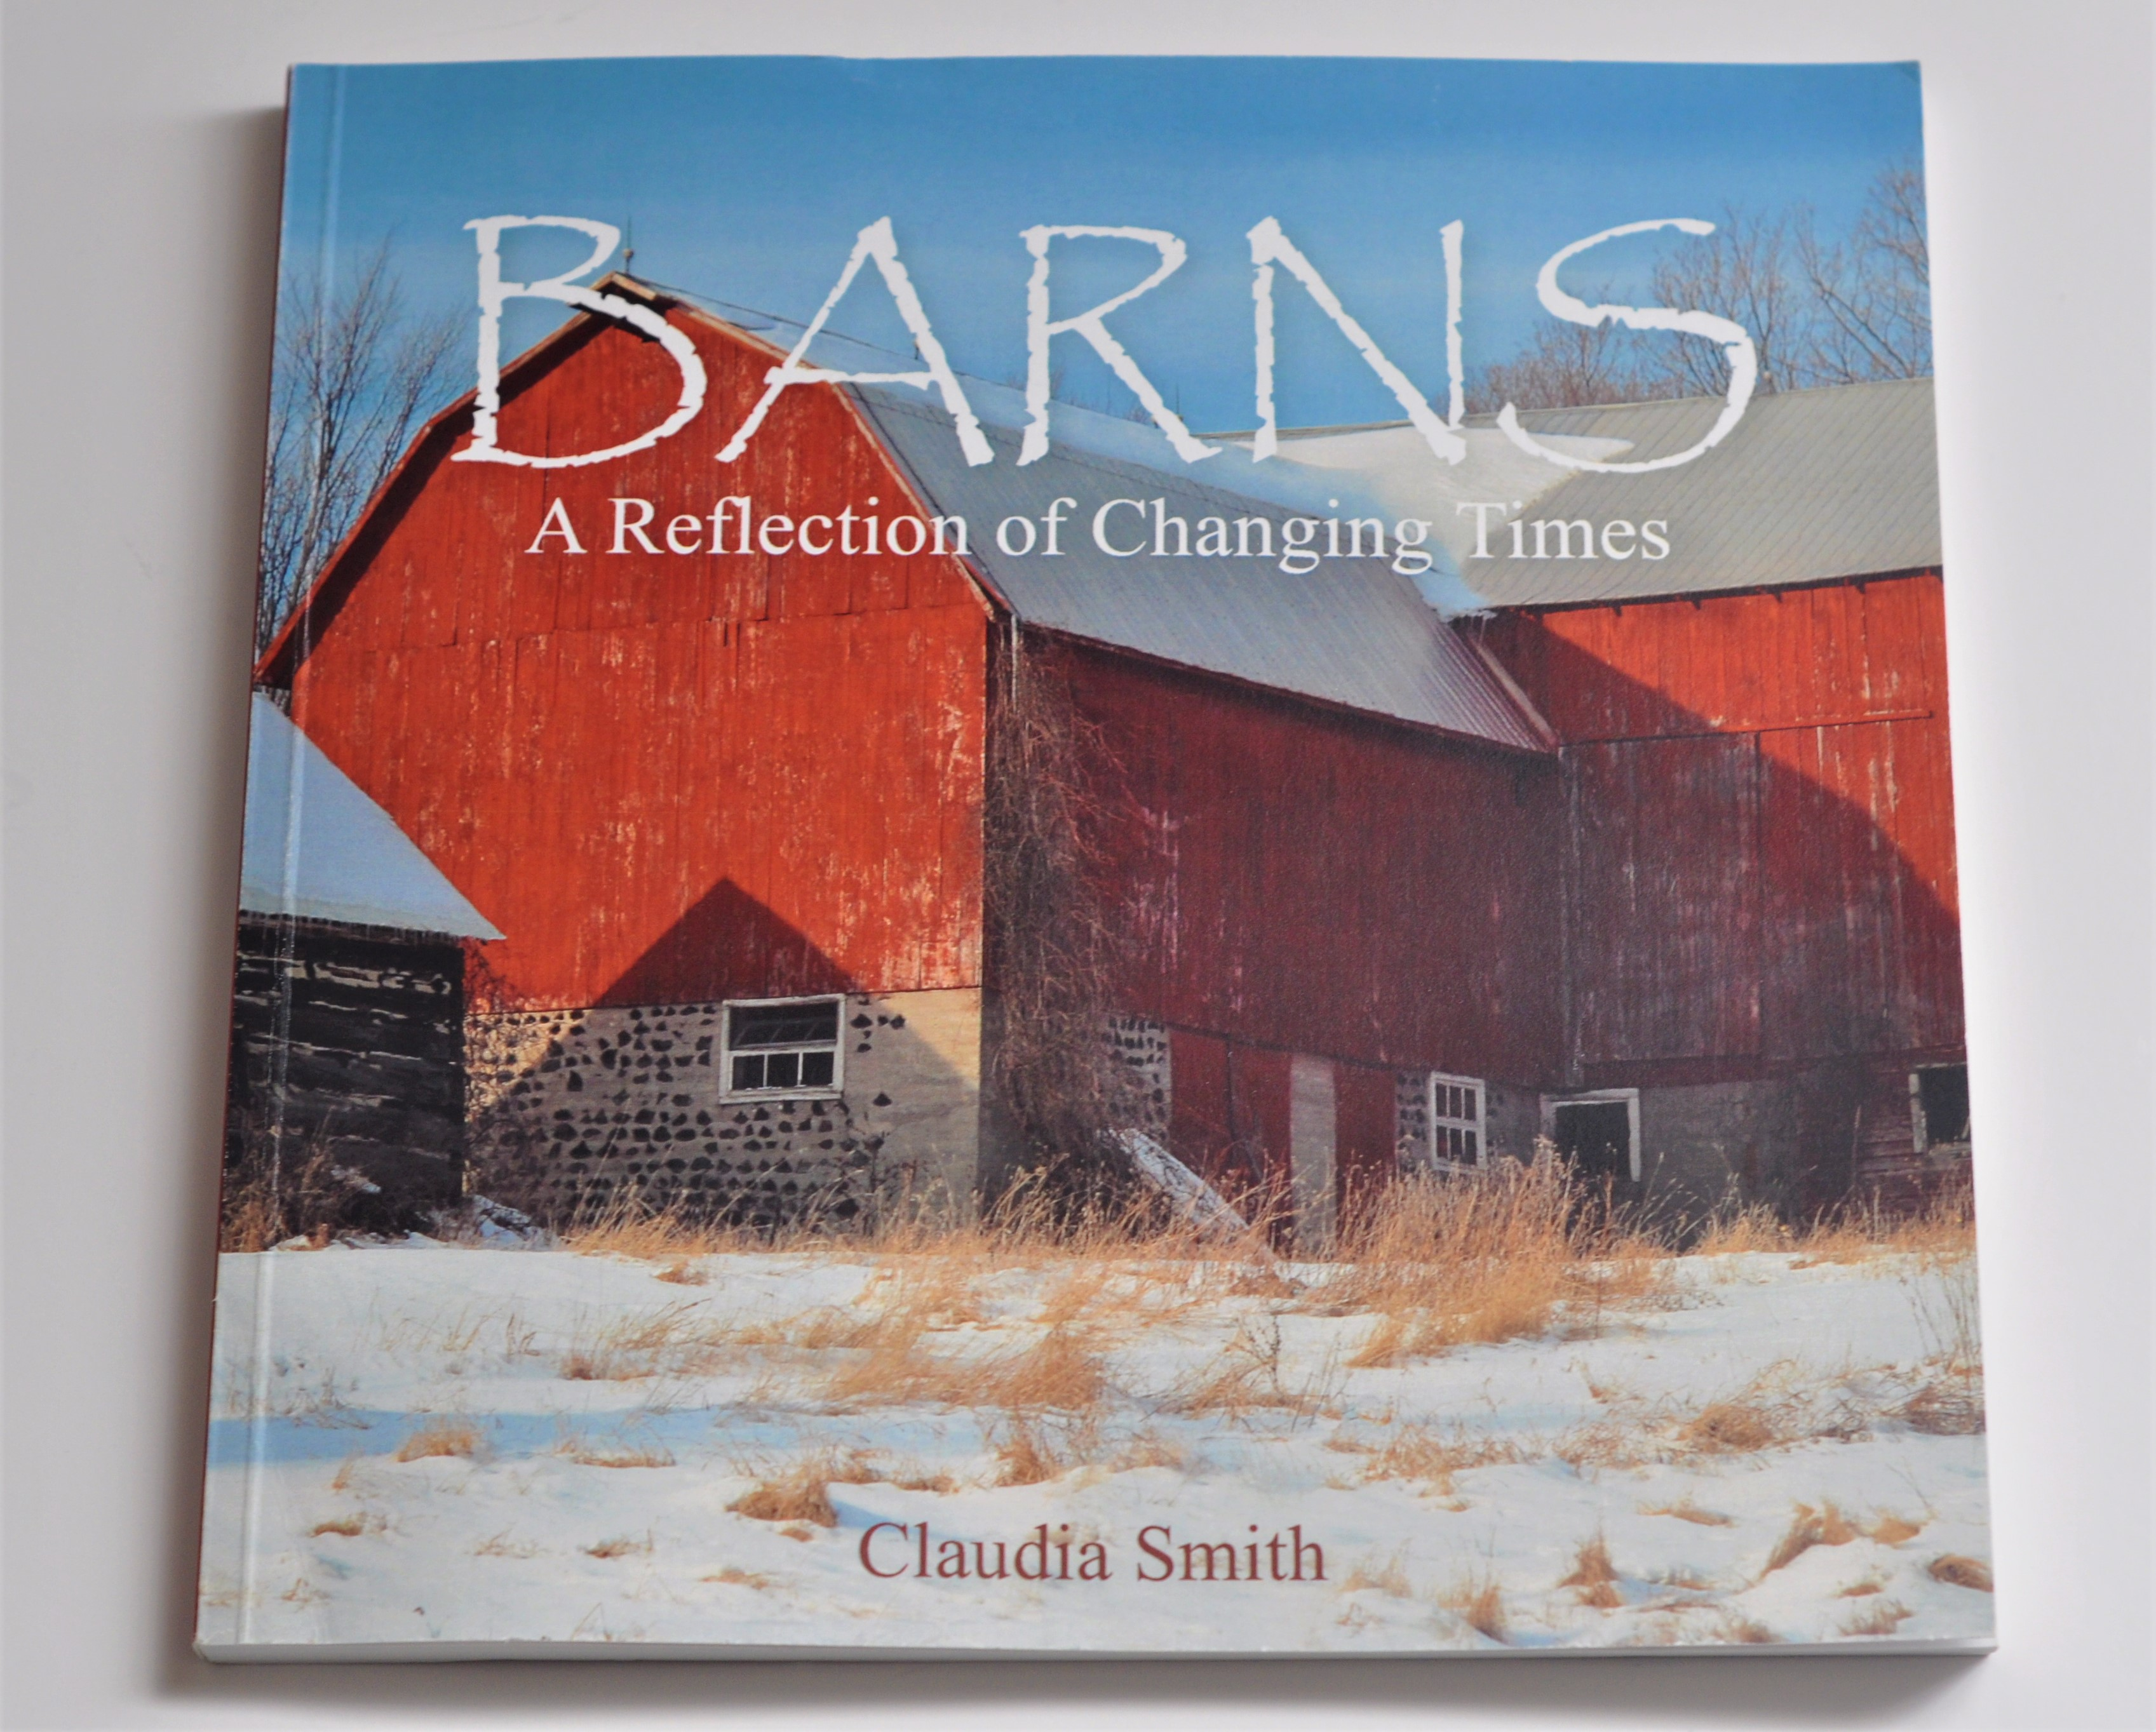 Barns, a Reflection of Changing Times